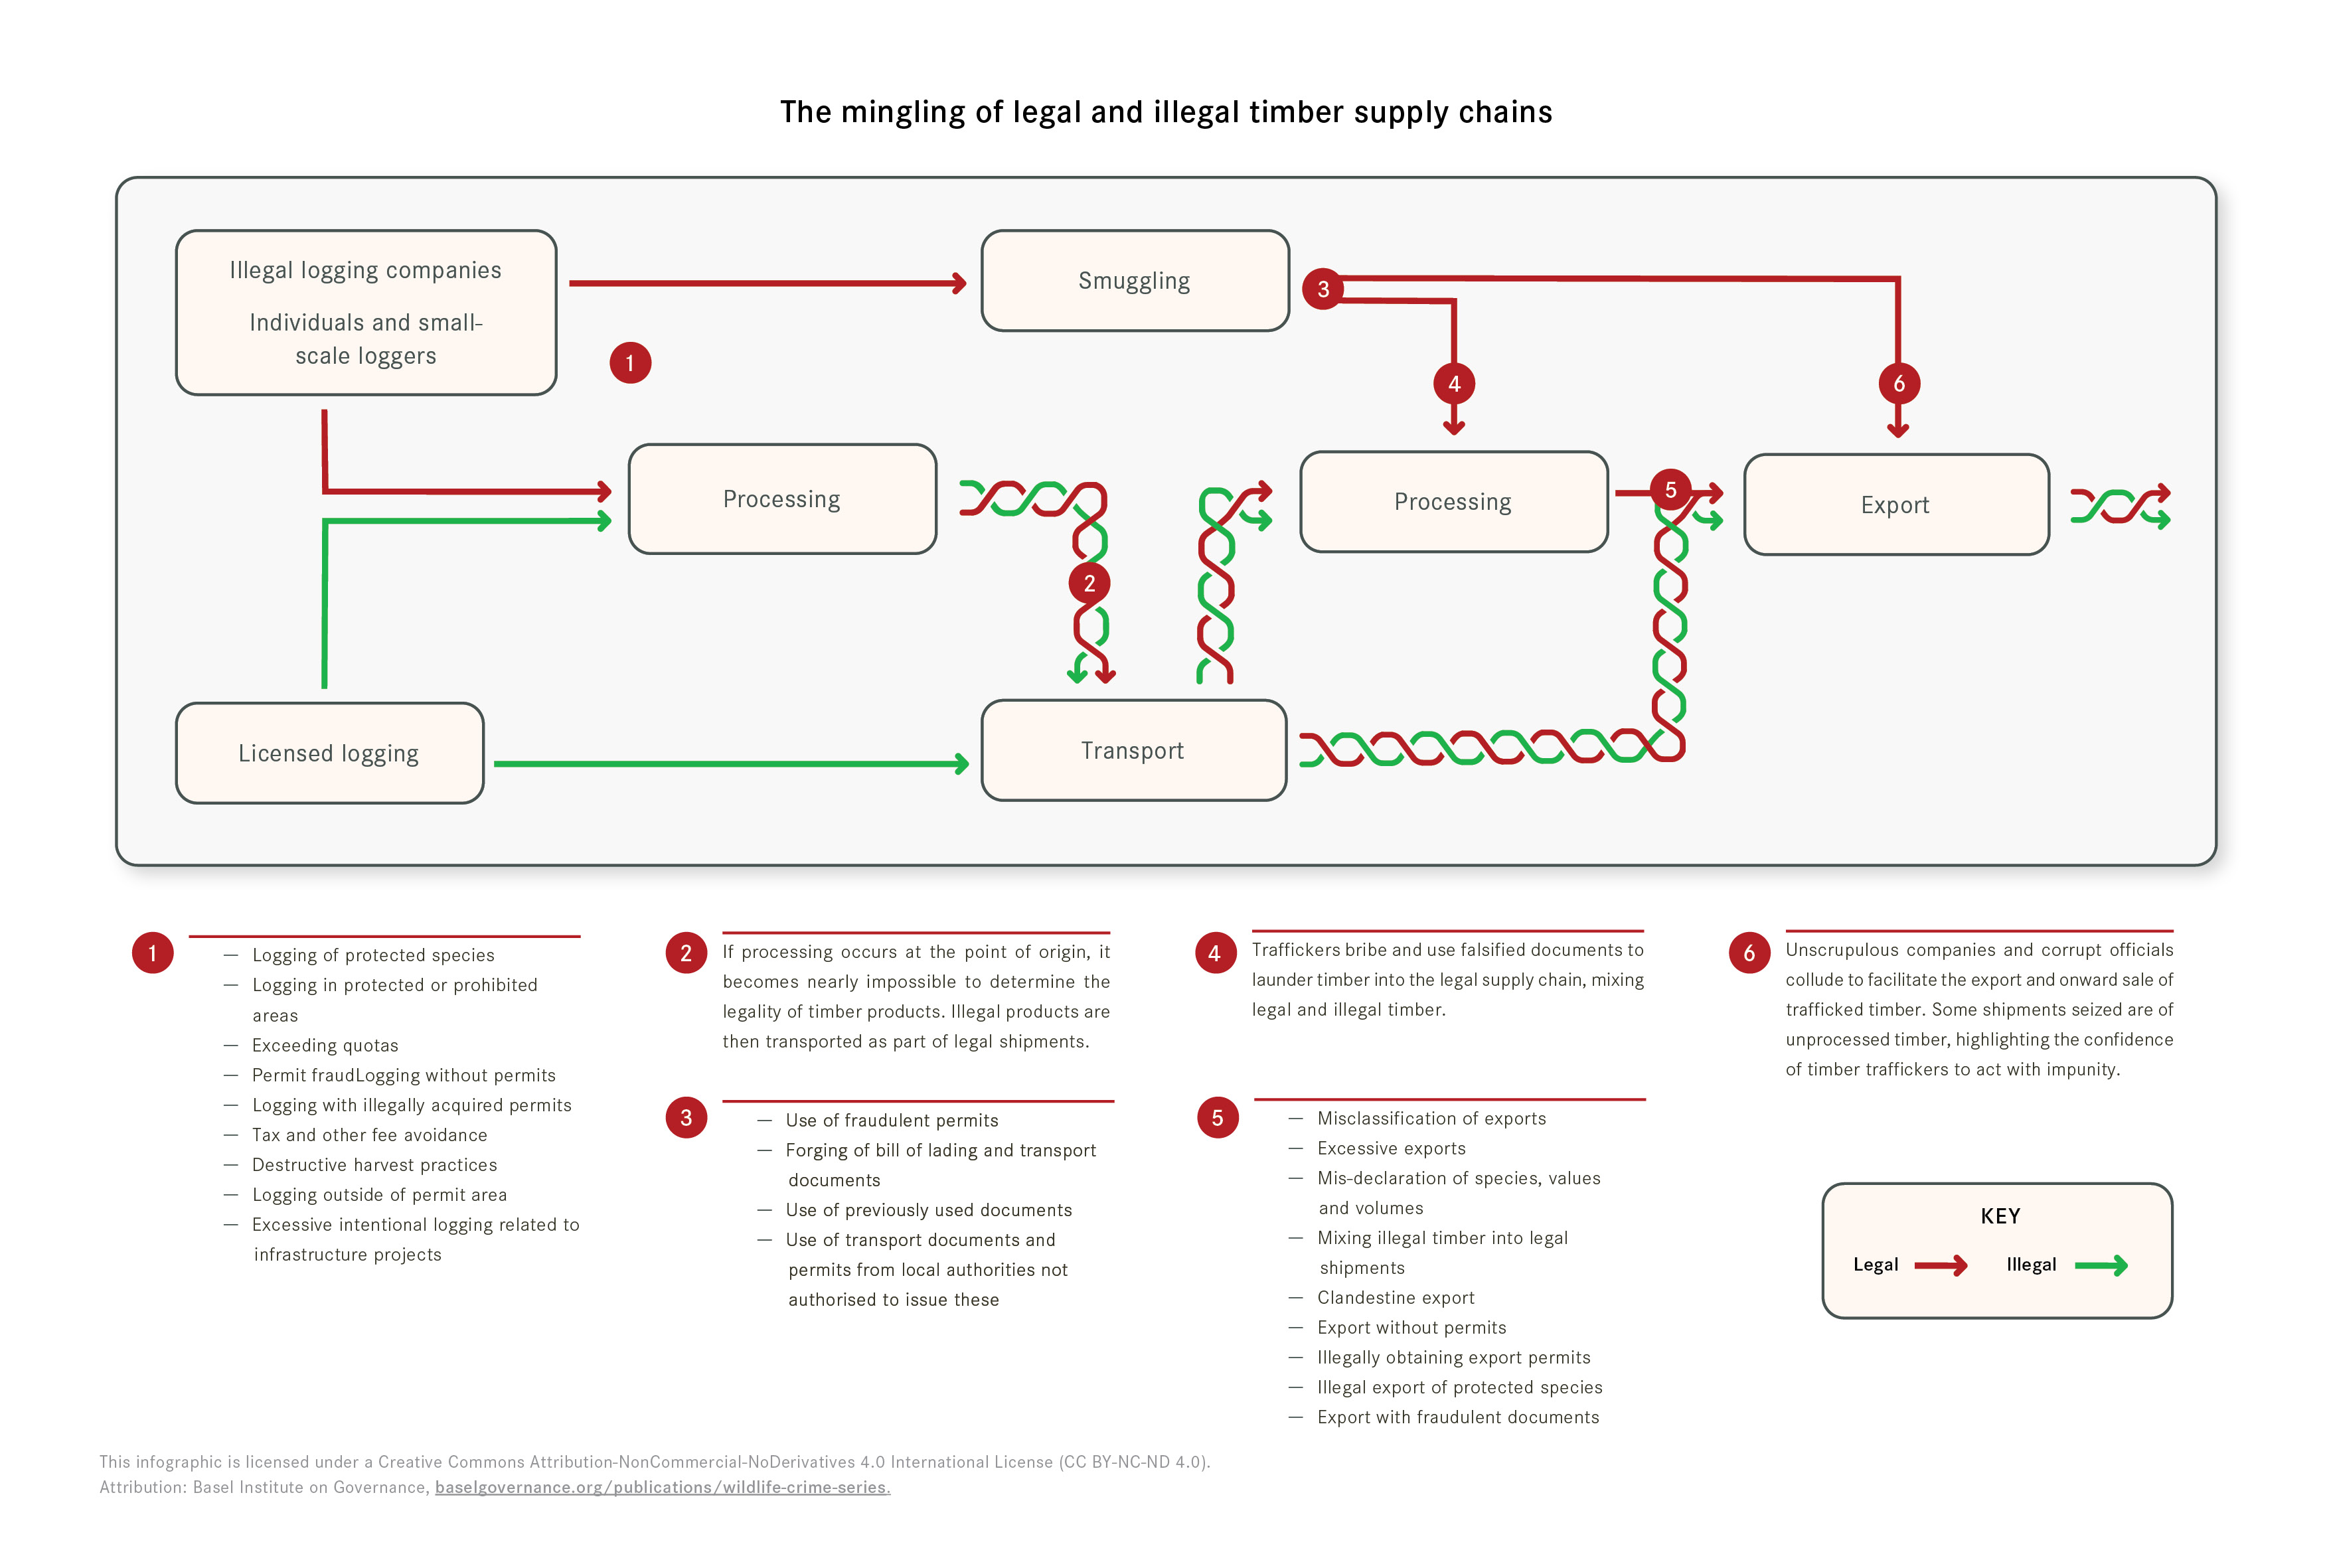 Infographic showing how legal and illegal timber supply chains intertwine